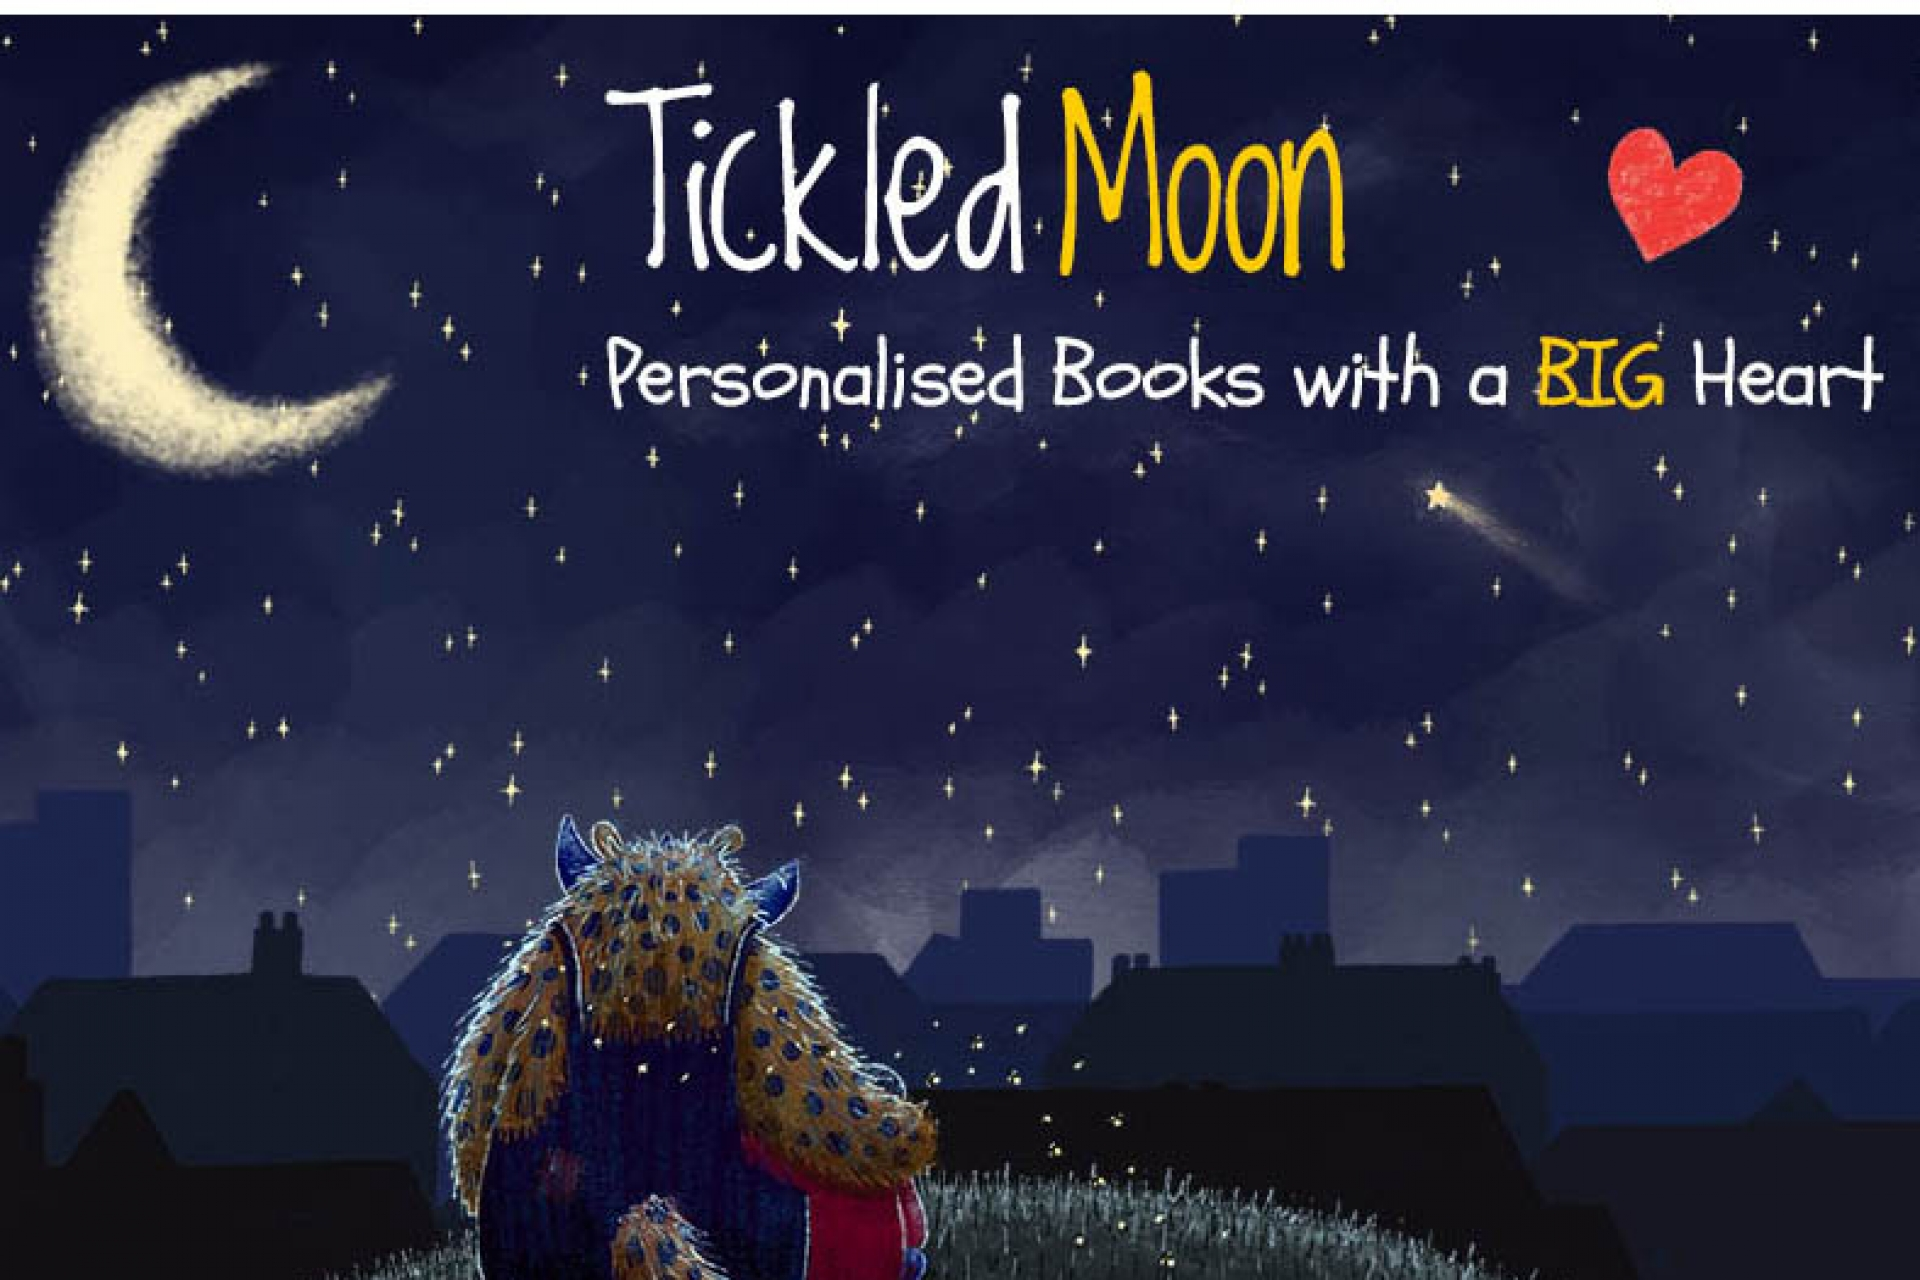 Tickled Moon - Personalised Books with a Big Heart